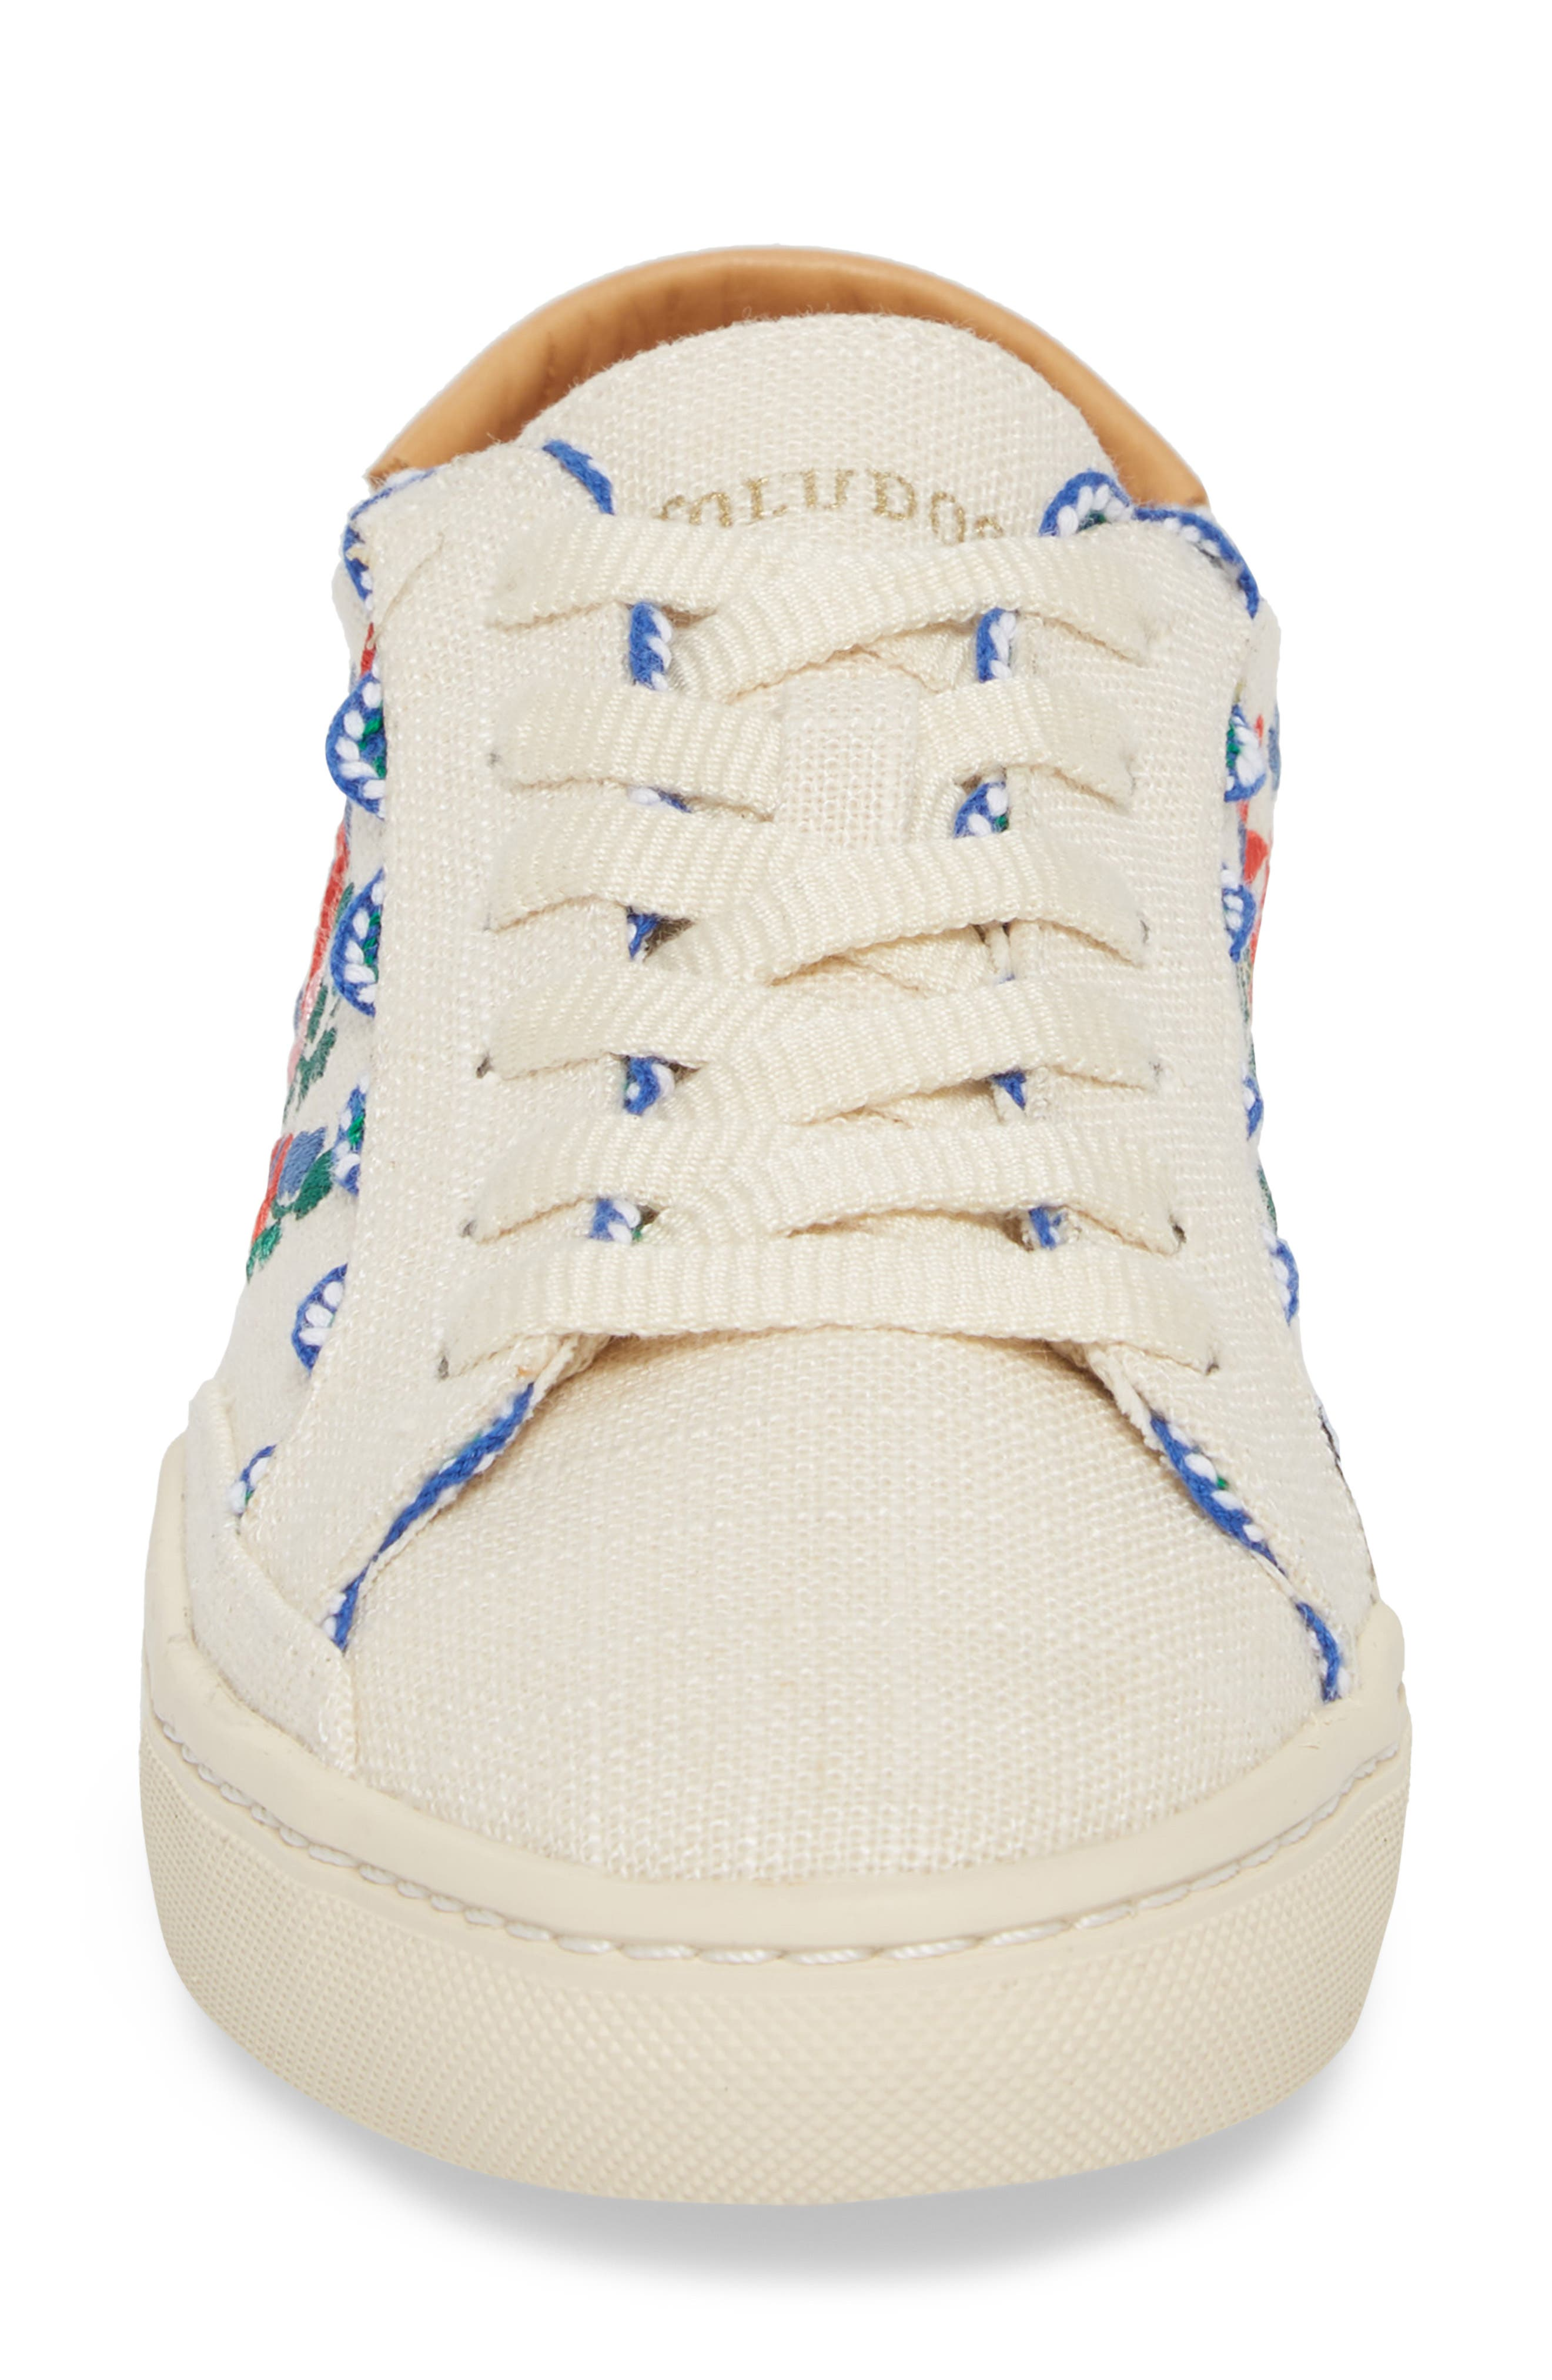 Ibiza Embroidered Sneaker,                             Alternate thumbnail 4, color,                             680